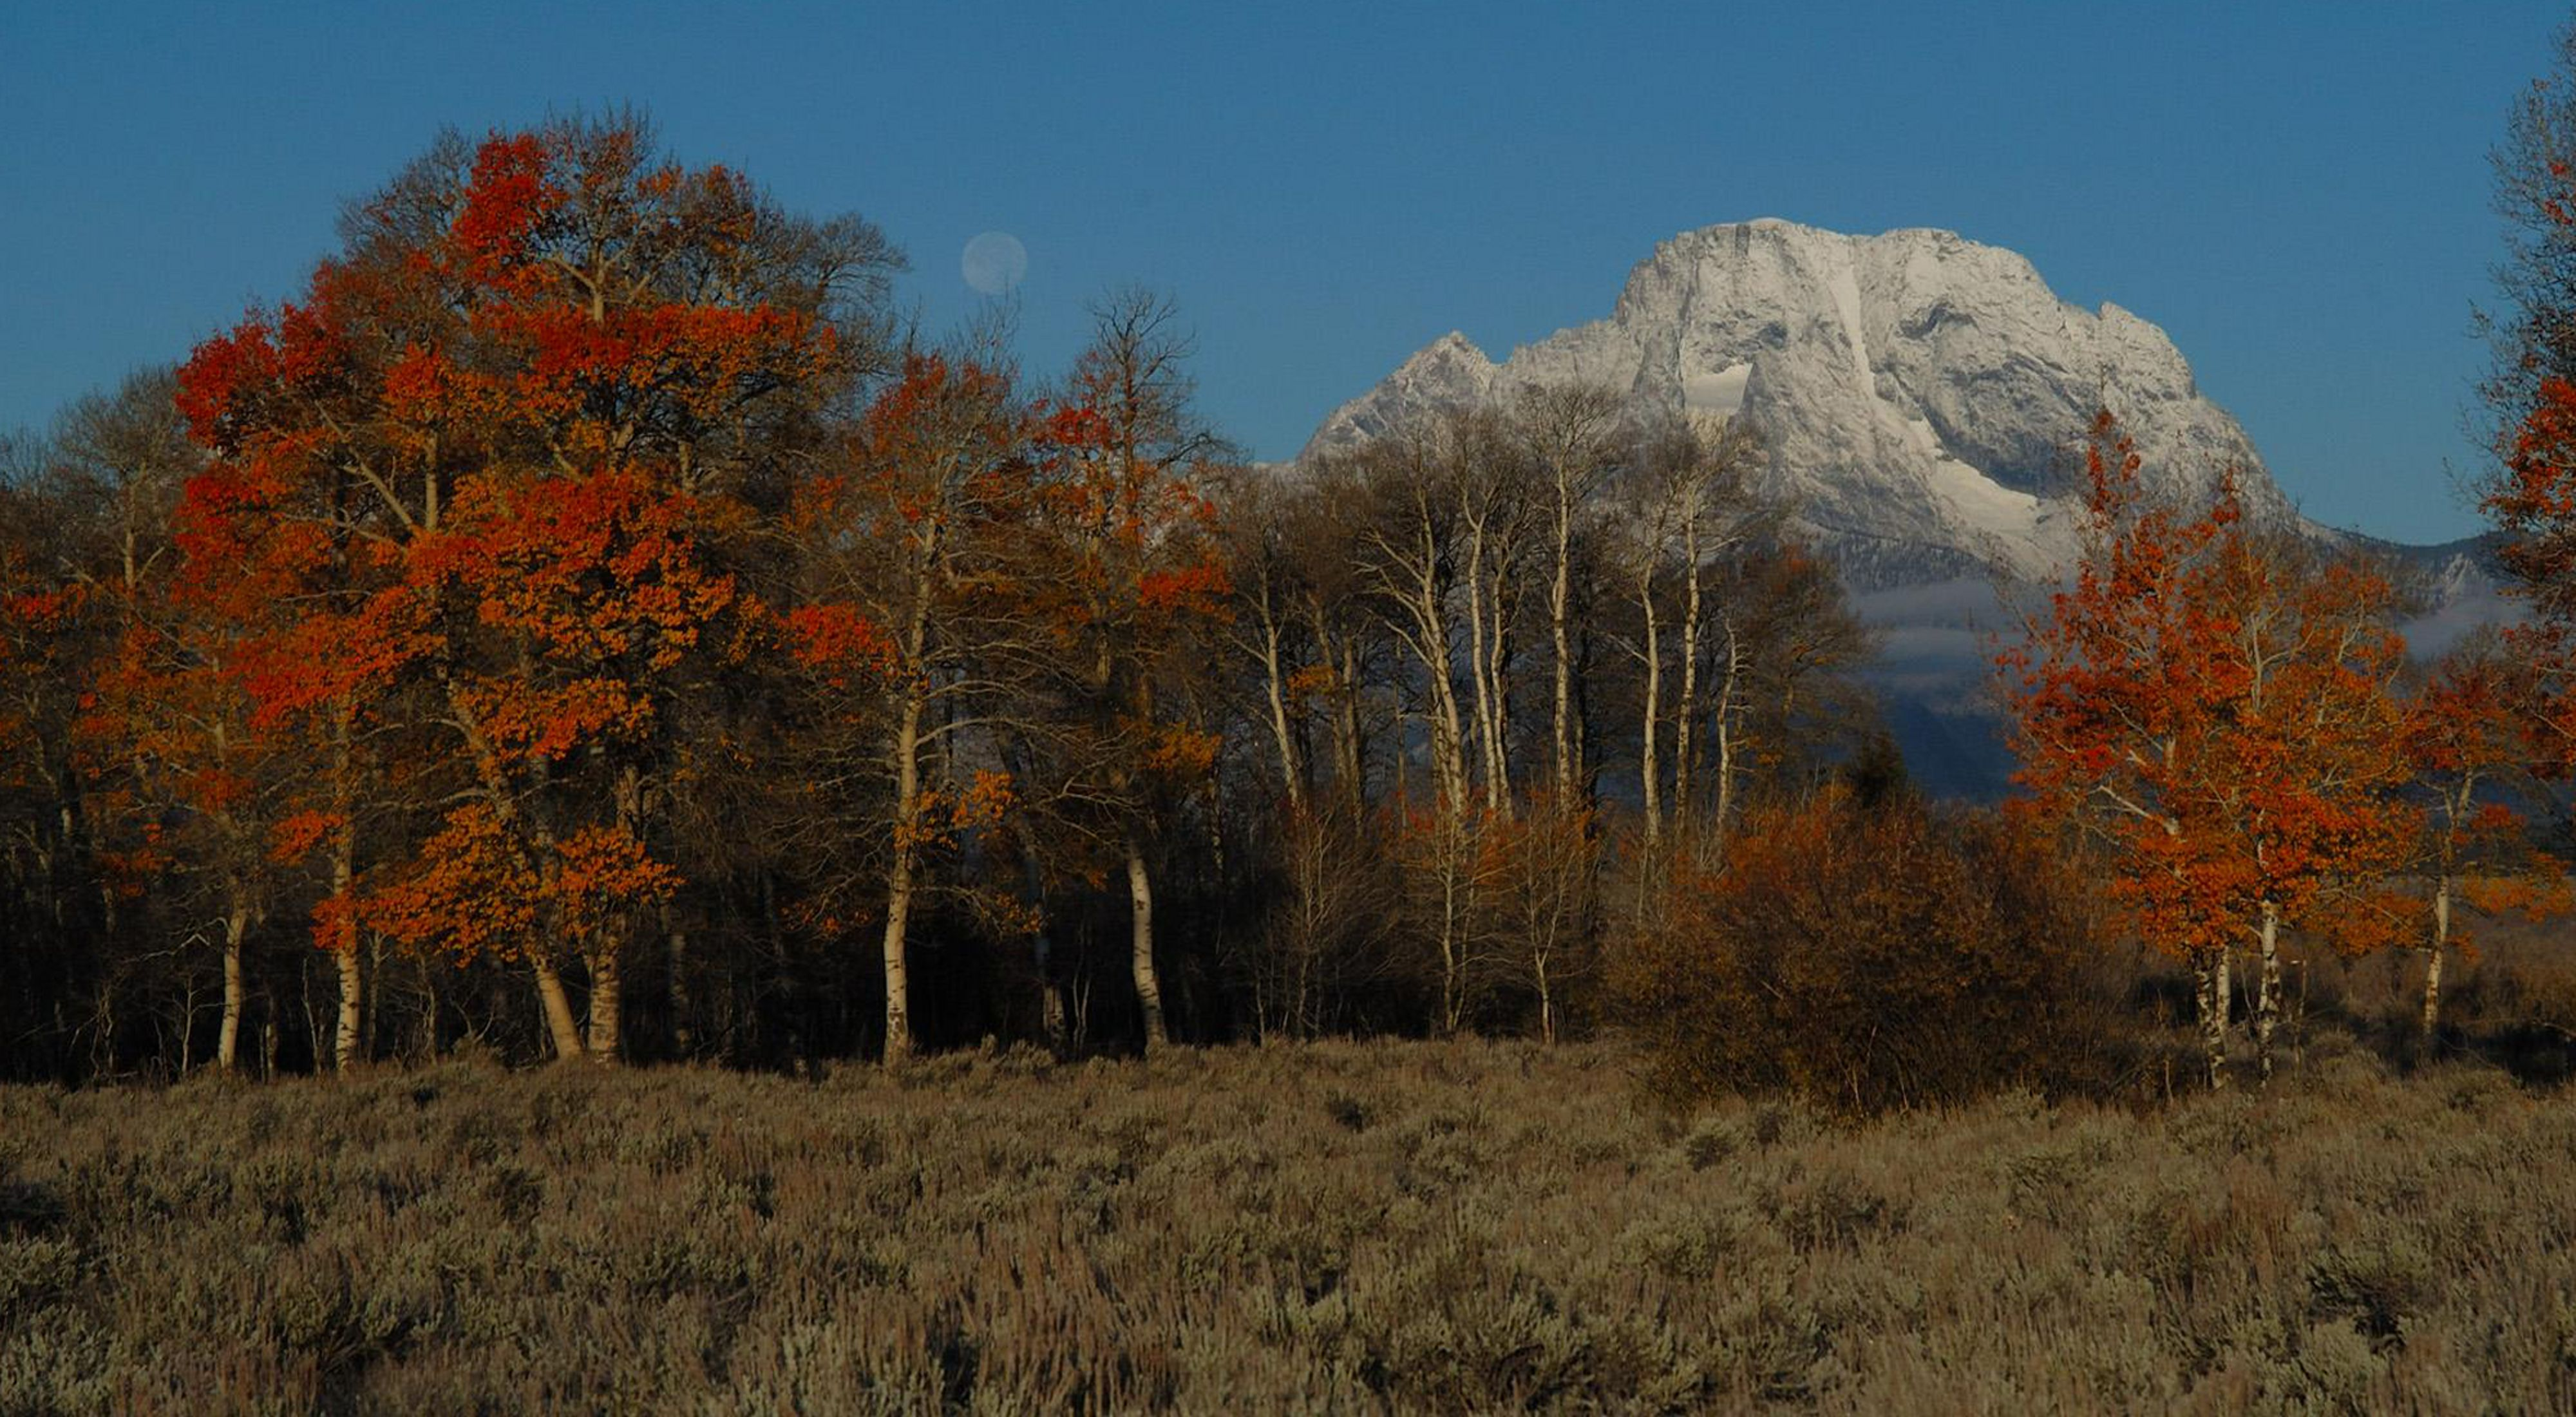 Red leaved trees with a mountain in the background.